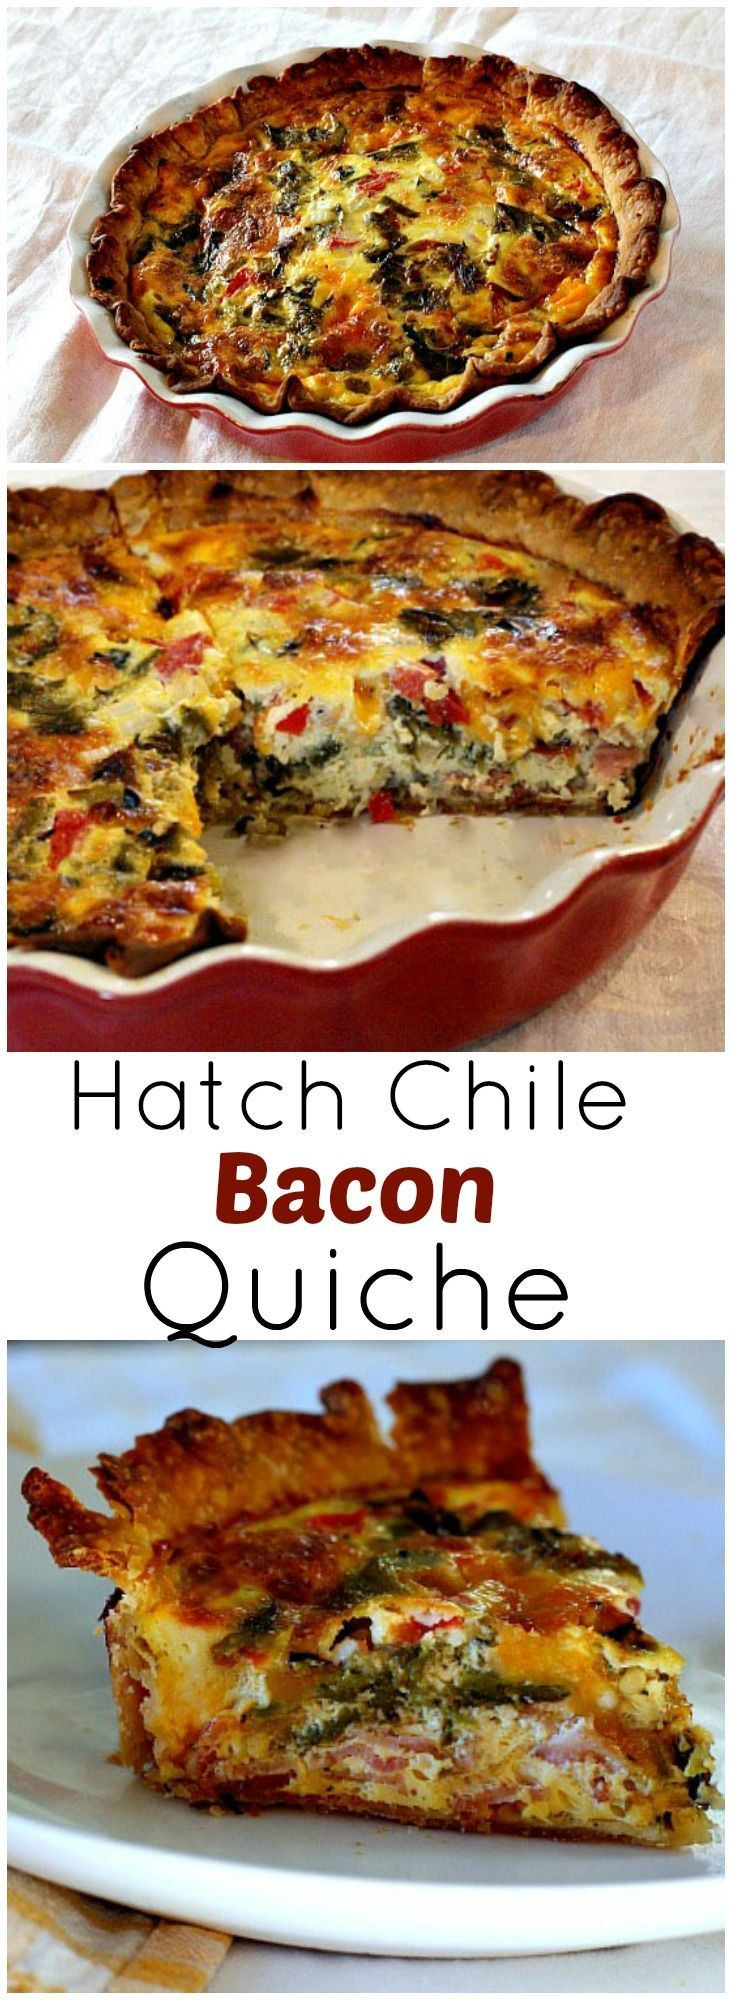 Hatch Chile and Bacon Quiche -